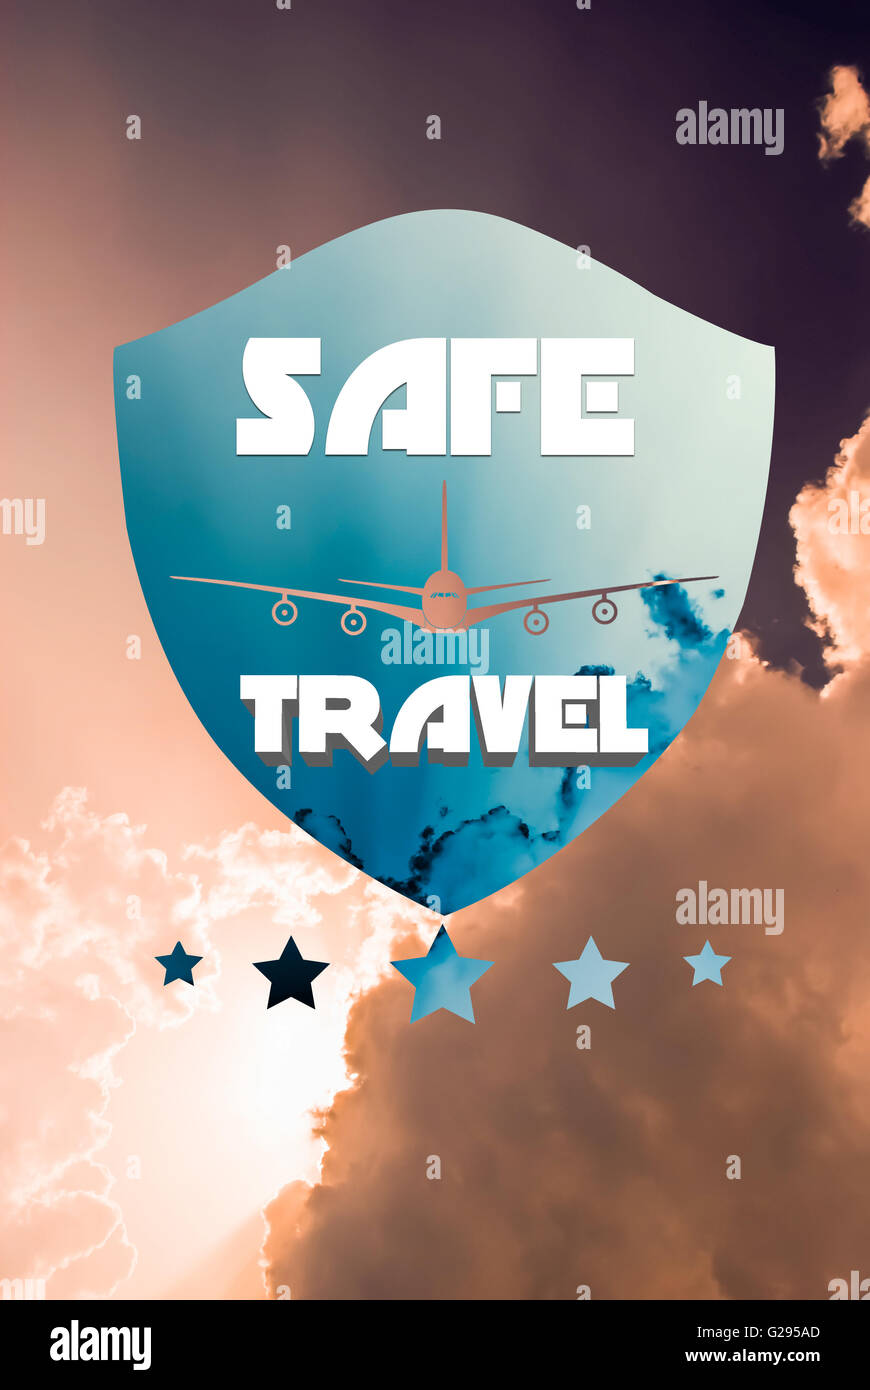 Safe travel or flying. Travel insurance concept with plane and shield shape on sky background - Stock Image